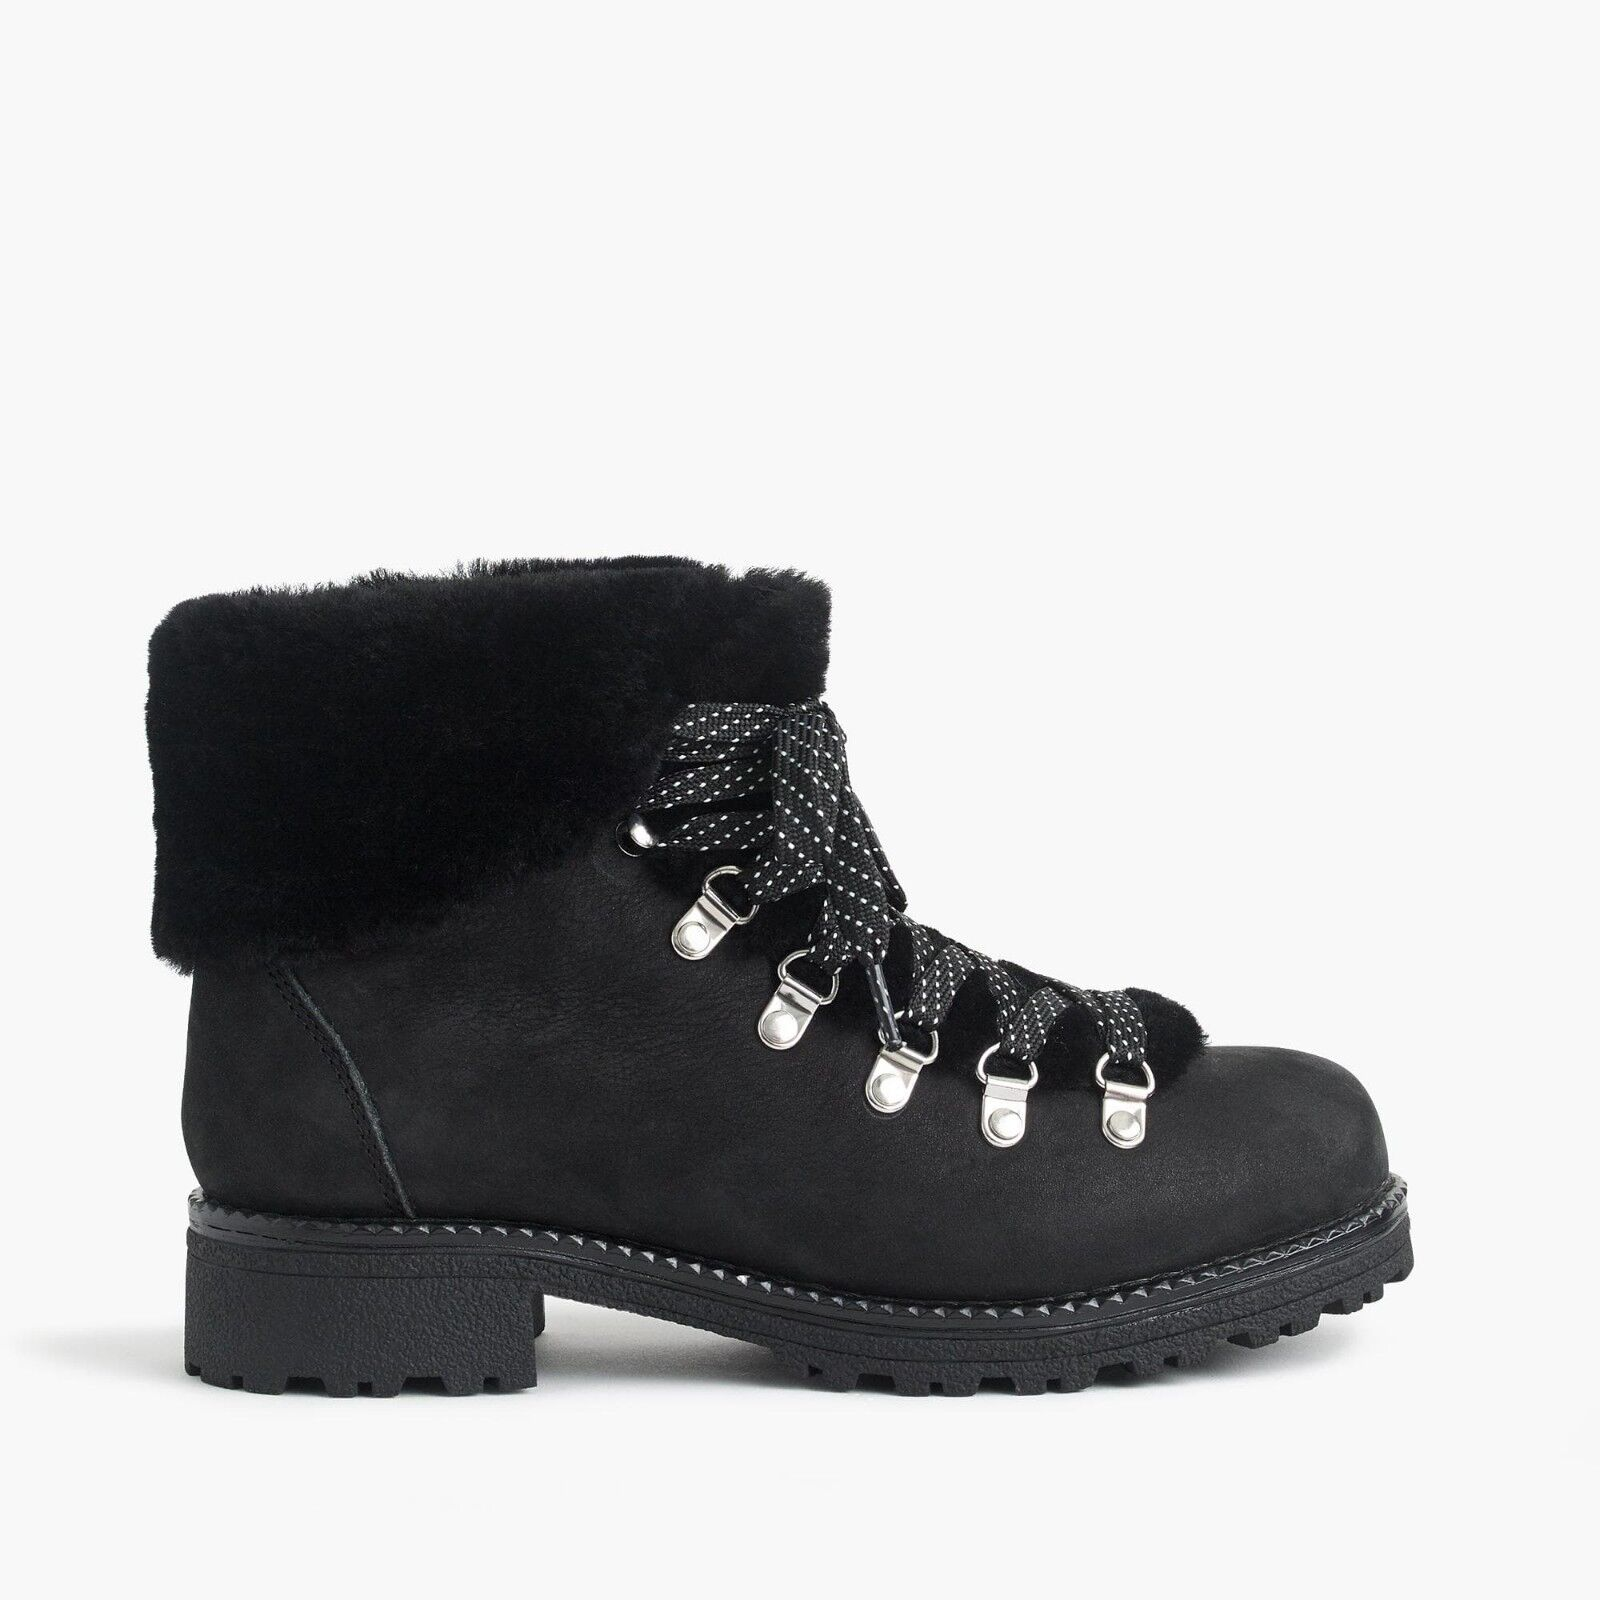 NIB J.CREW 178 Nordic Boots BLACK F8444 SZ 7M 10M *nubuck leather winter snow